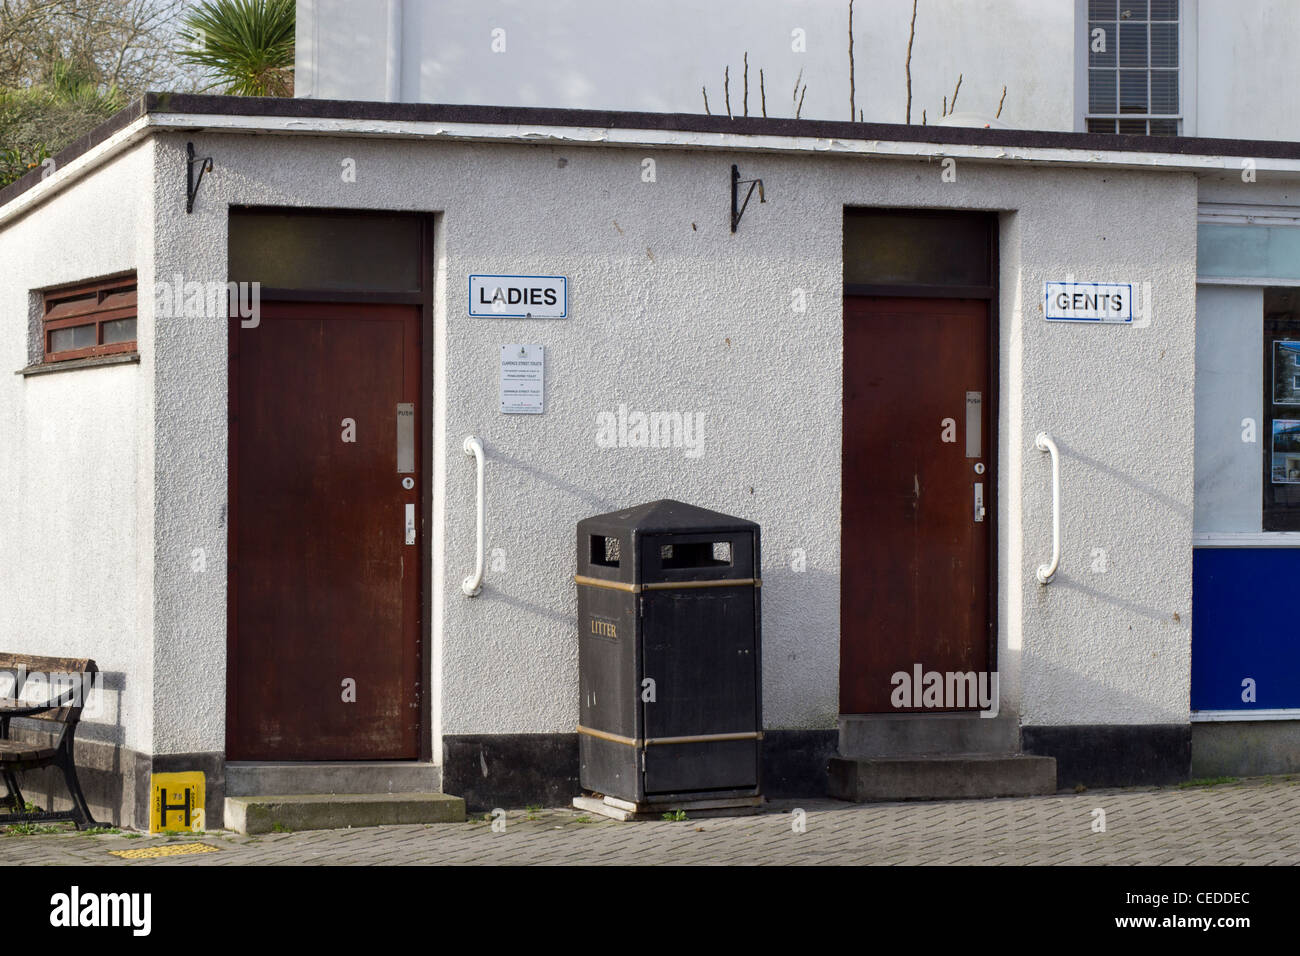 Ladies and gents toilets in Penzance, Cornwall UK. - Stock Image